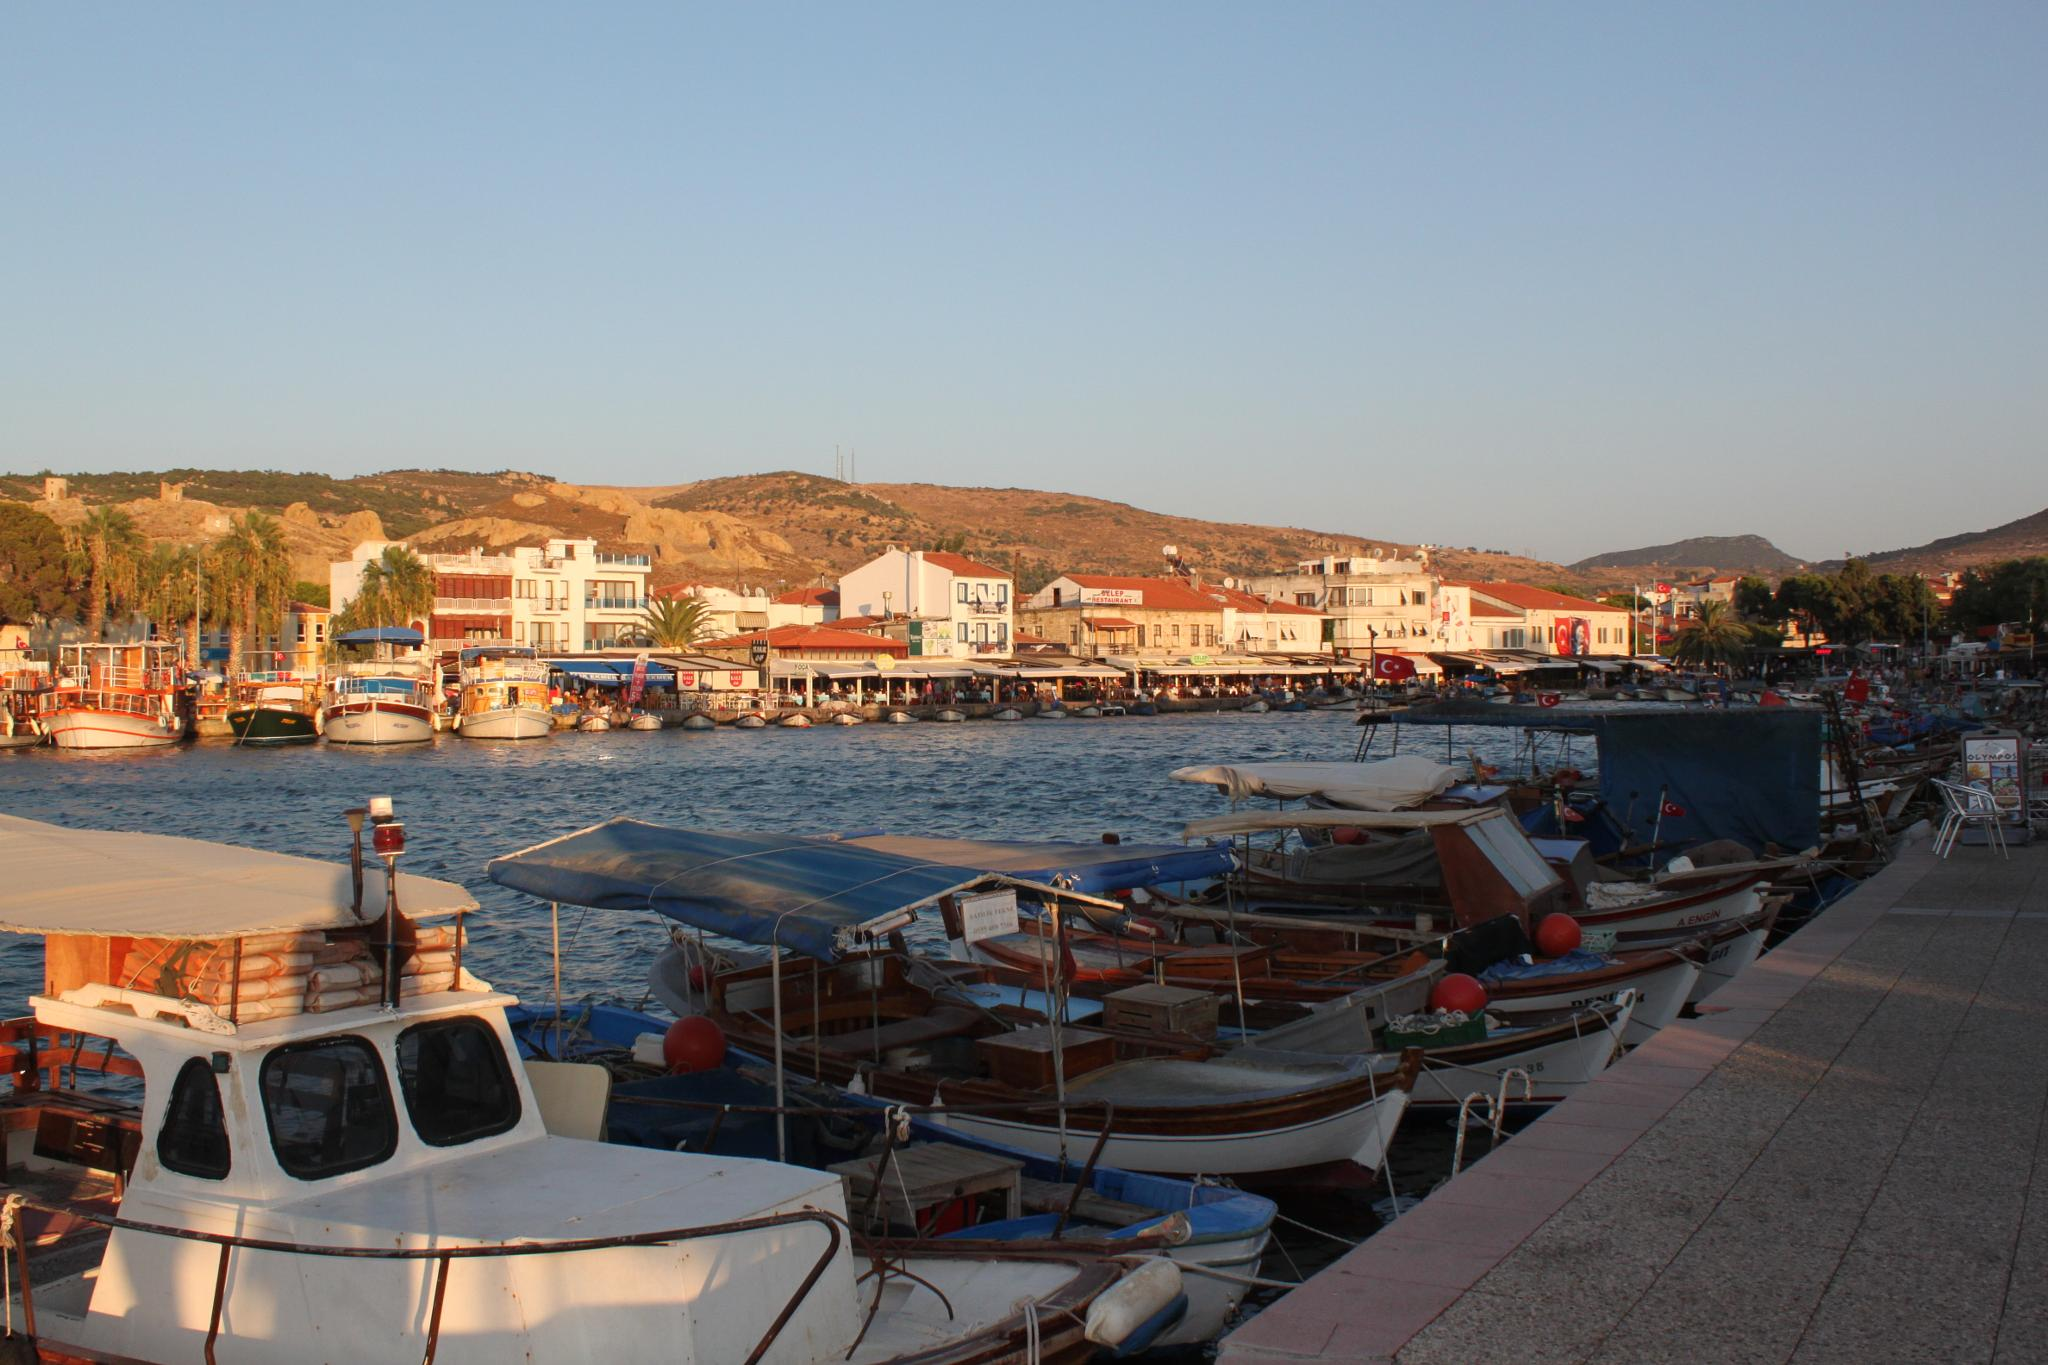 together in peace and foça by YAKUP ŞAHİN